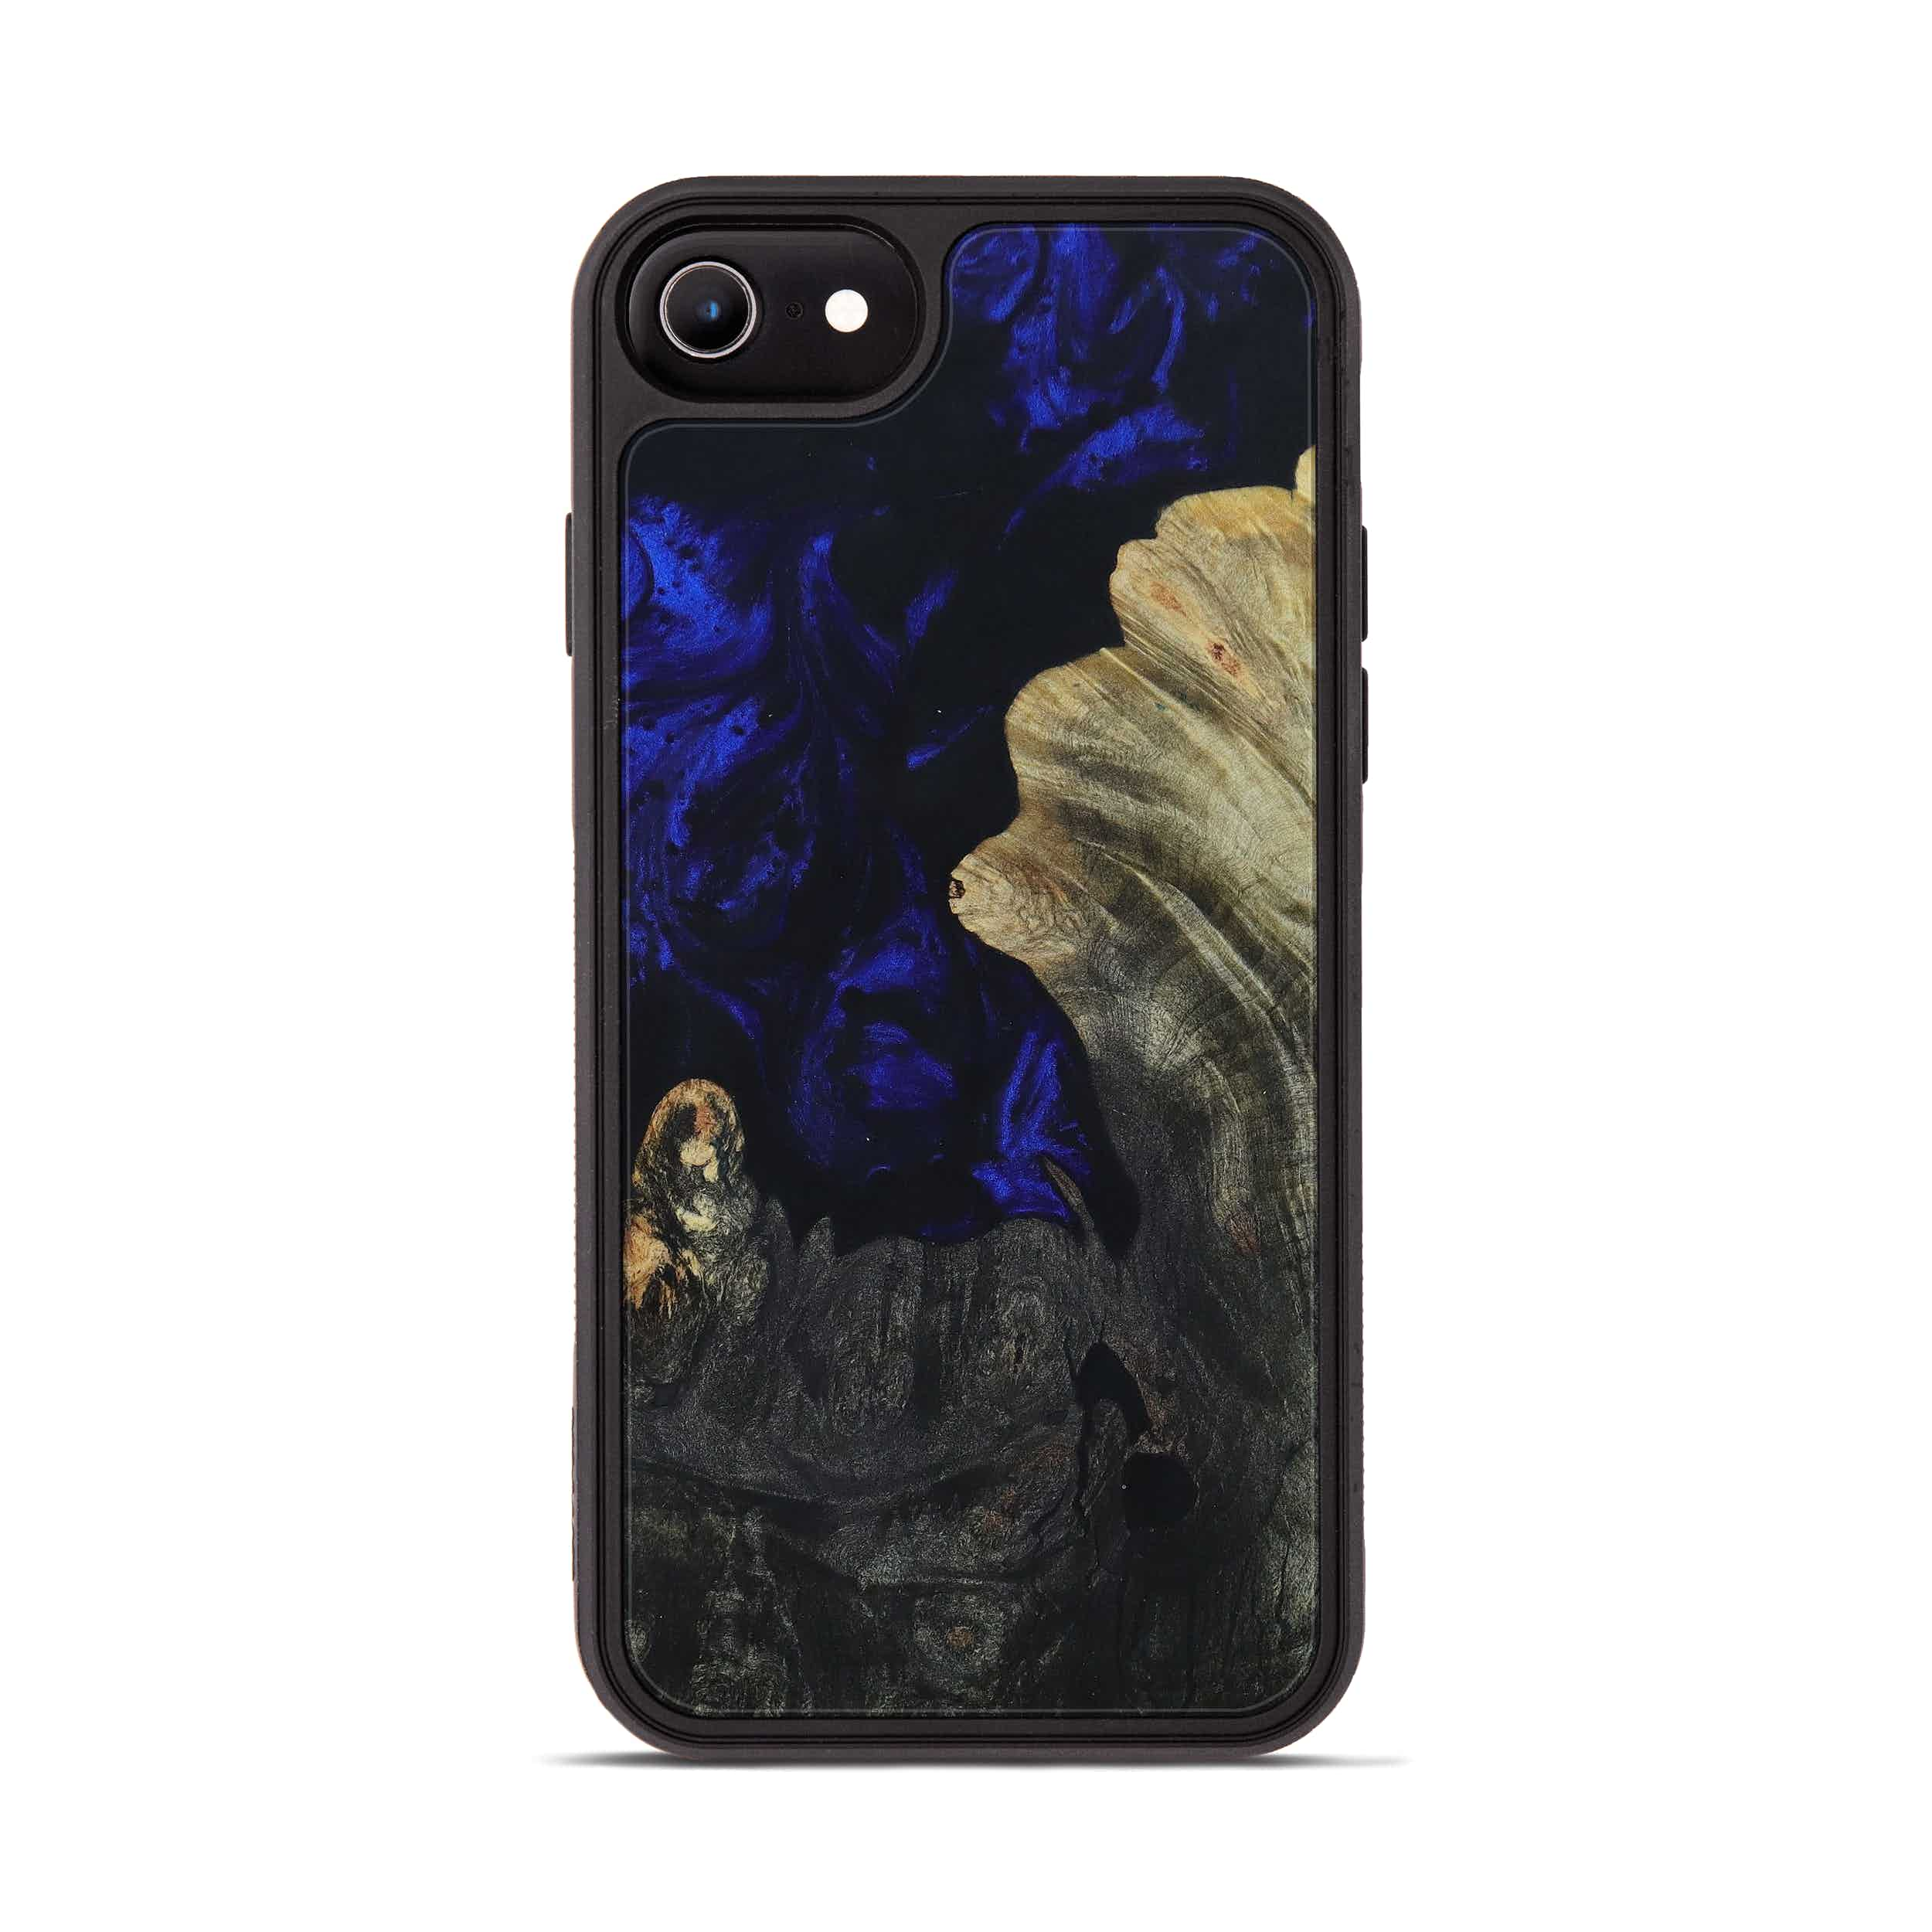 iPhone 6s Wood+Resin Phone Case - Todd (Dark Blue, 396131)